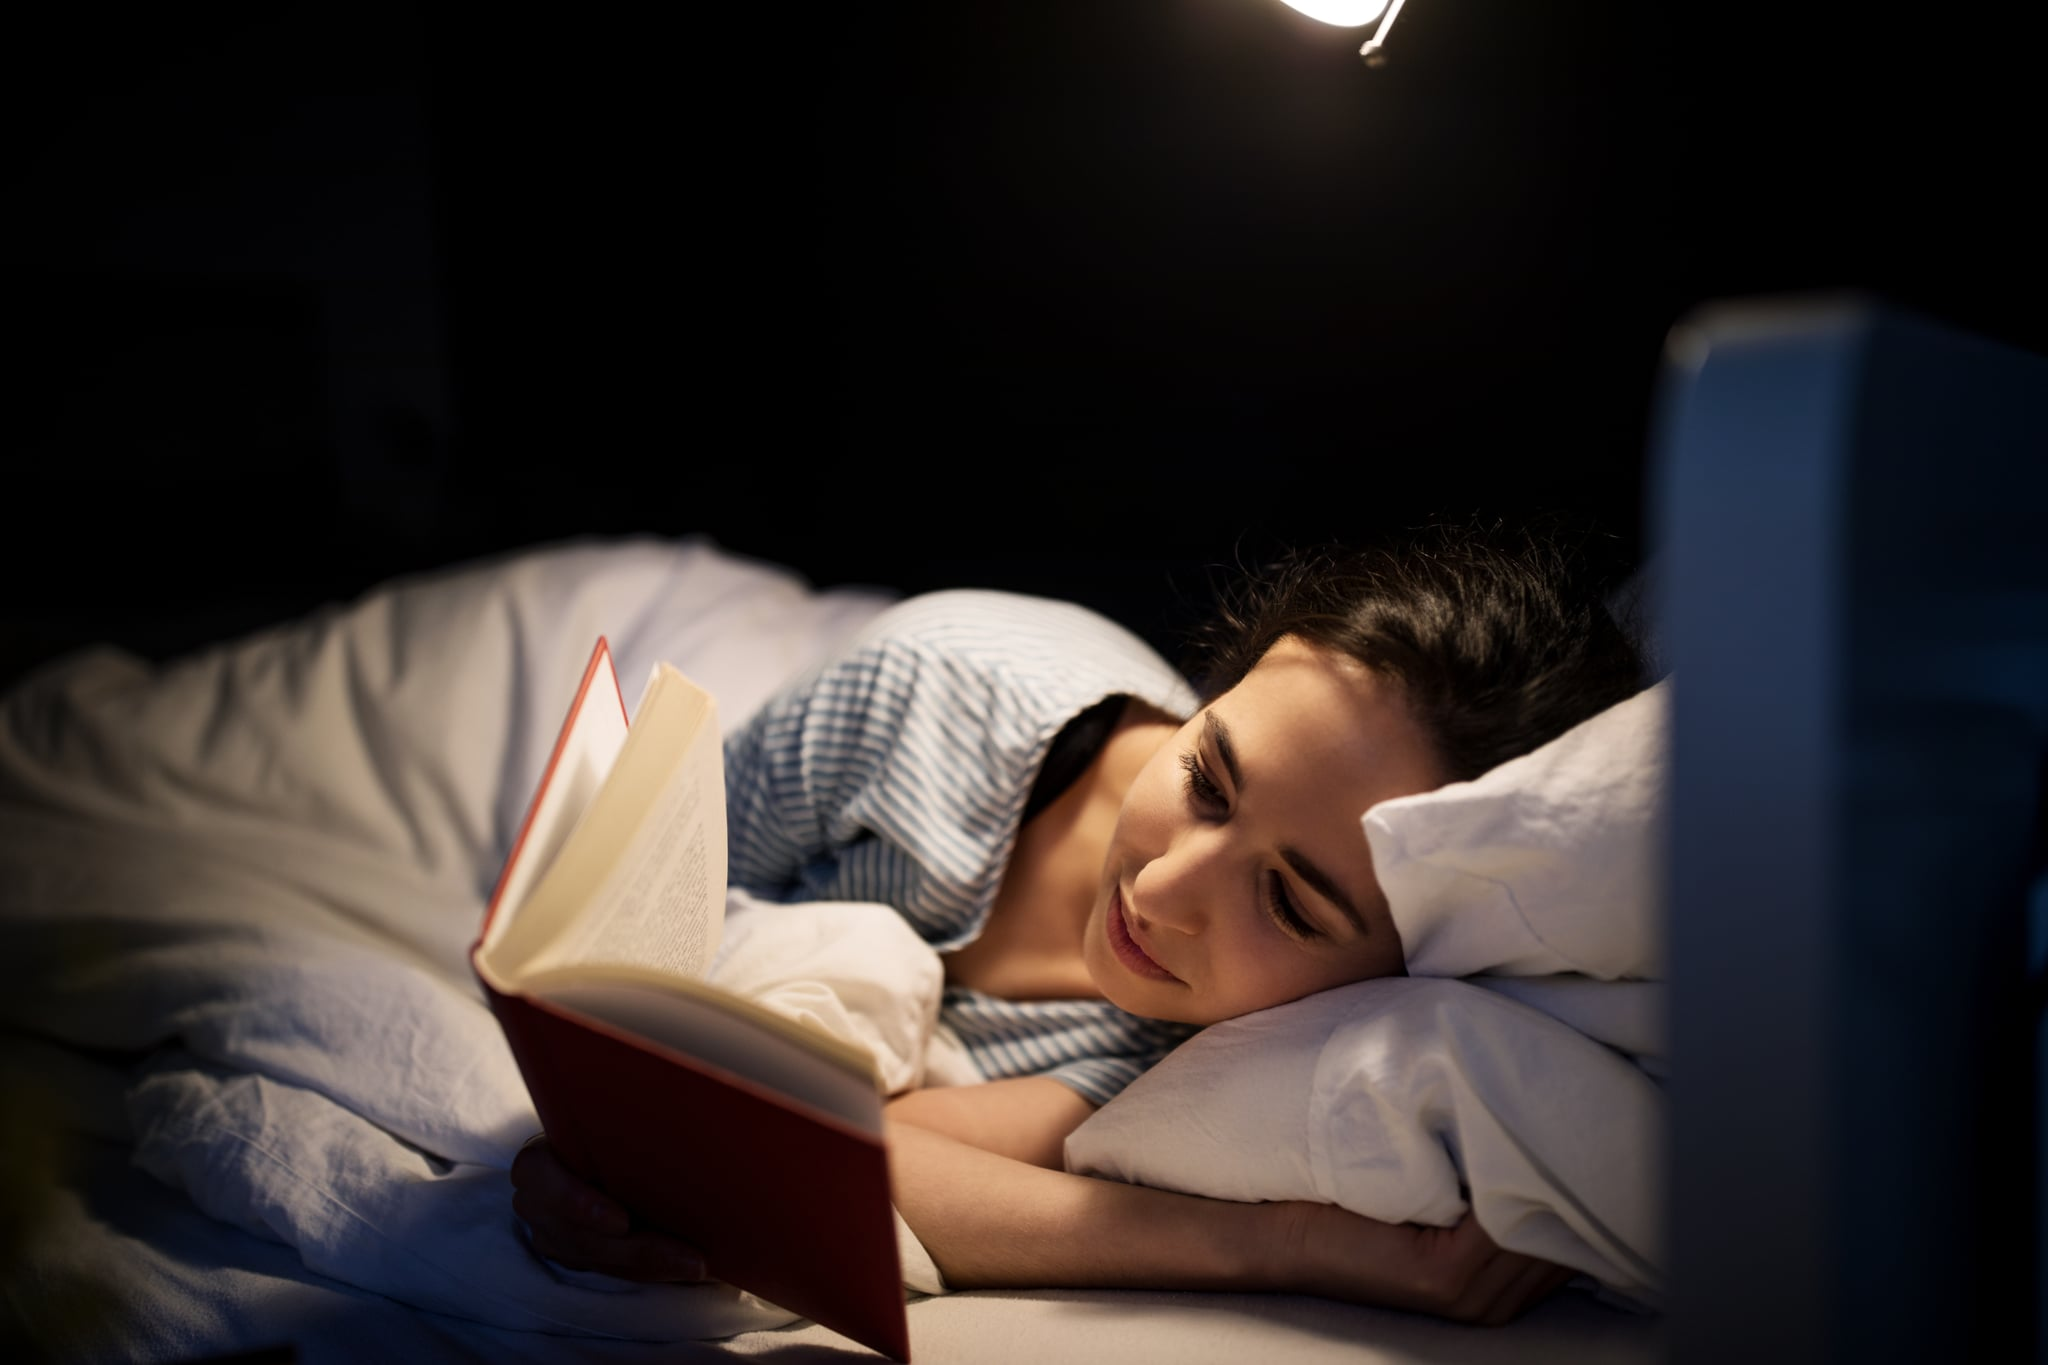 If You Have Trouble Staying Asleep, an Expert Recommends Reading in Bed – Here's Why